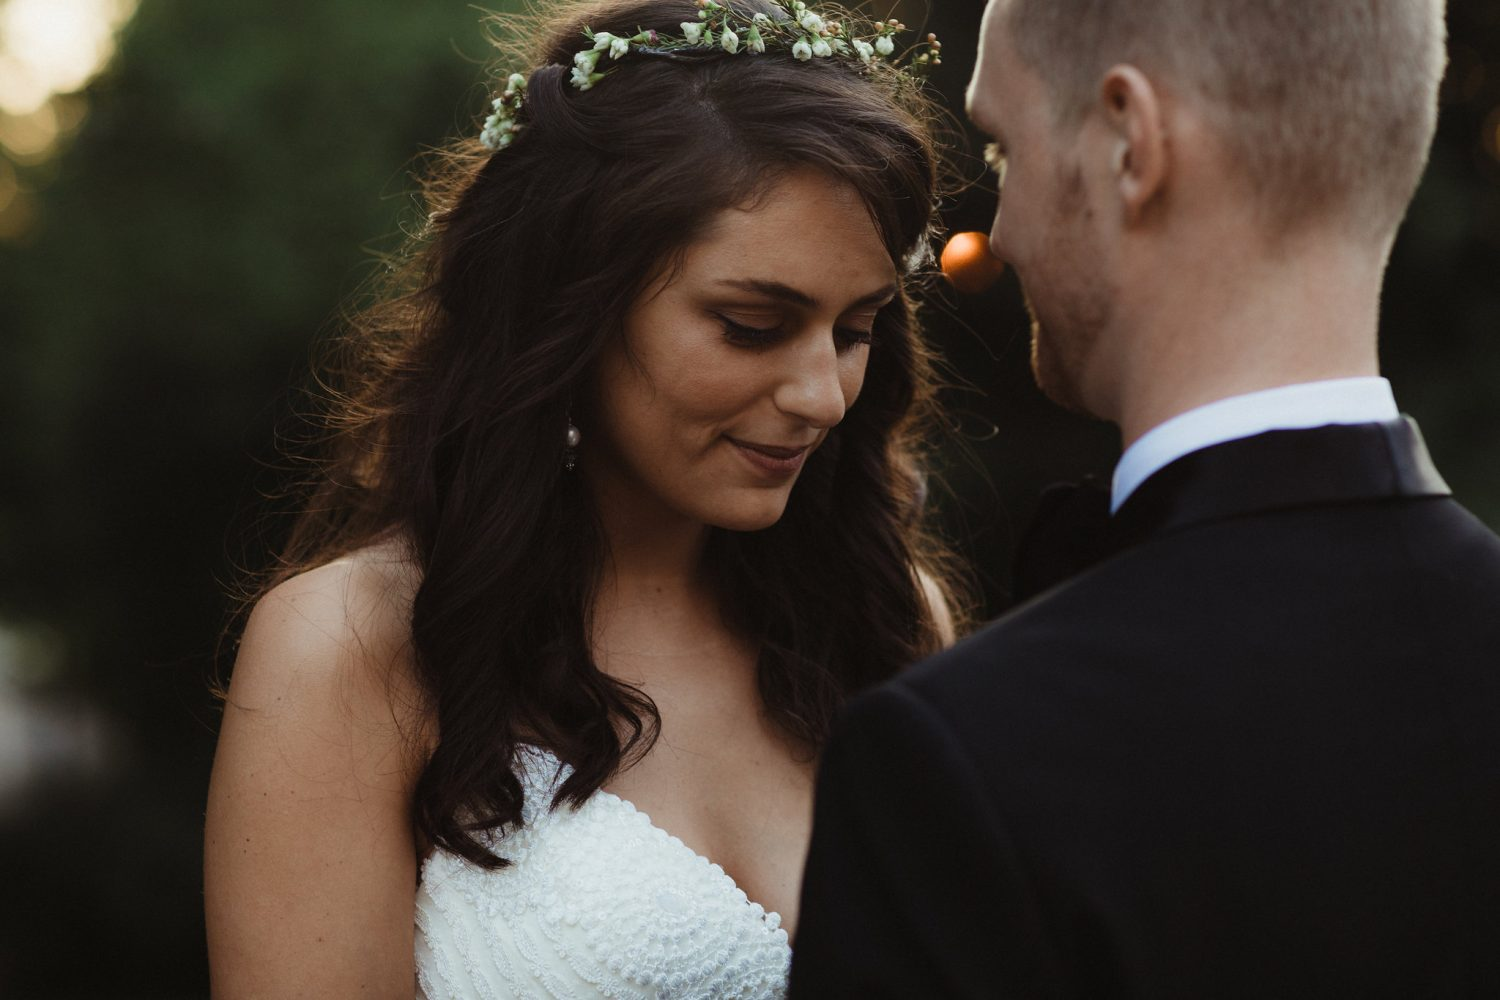 intimate moment with bride and groom